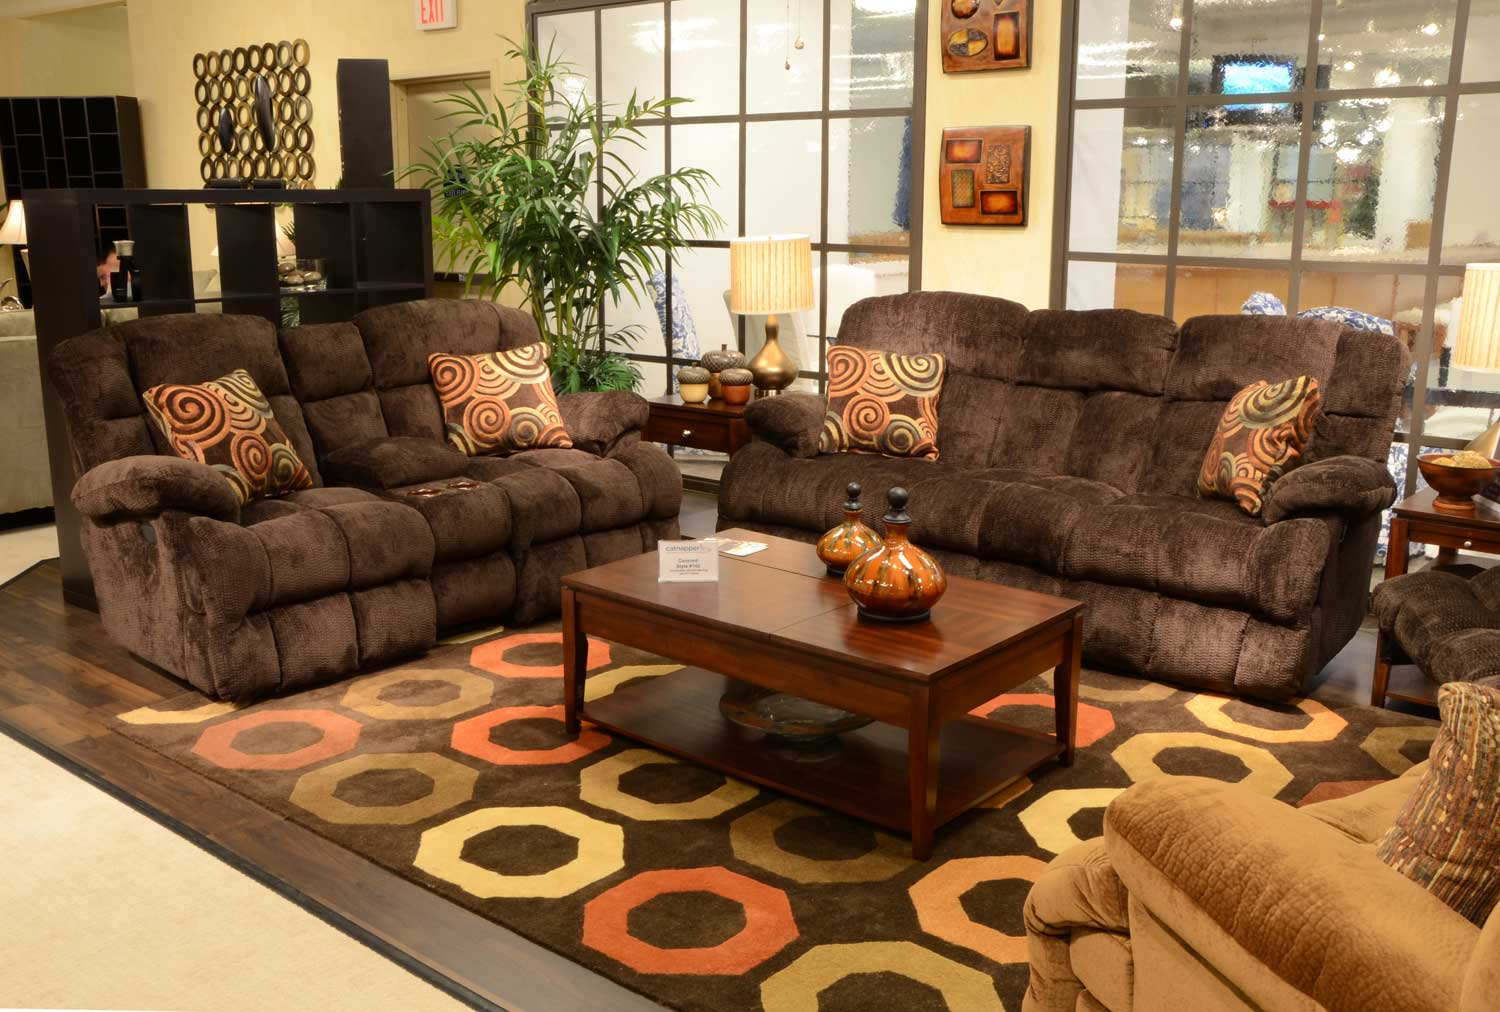 catnapper ranger reclining sectional sofa set recover leather concord lay flat mahogany